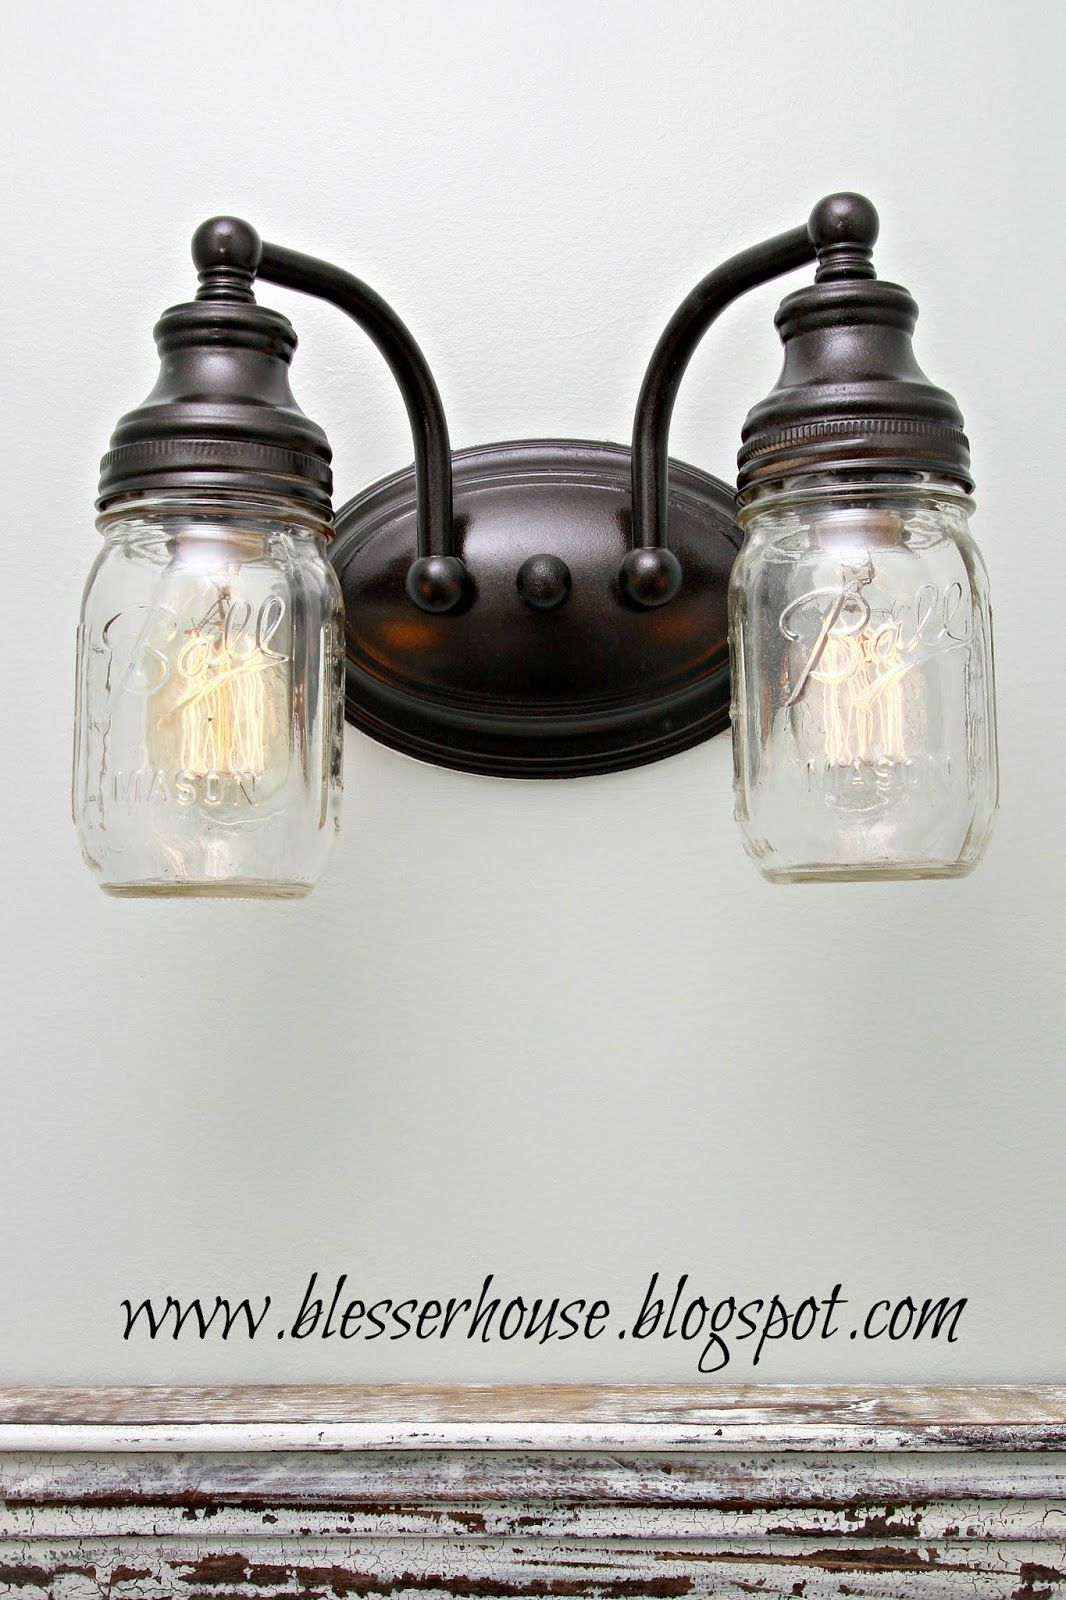 Diy Mason Jar Vanity Light Diy Mason Jar Lights Mason Jar Diy Mason Jar Crafts Diy